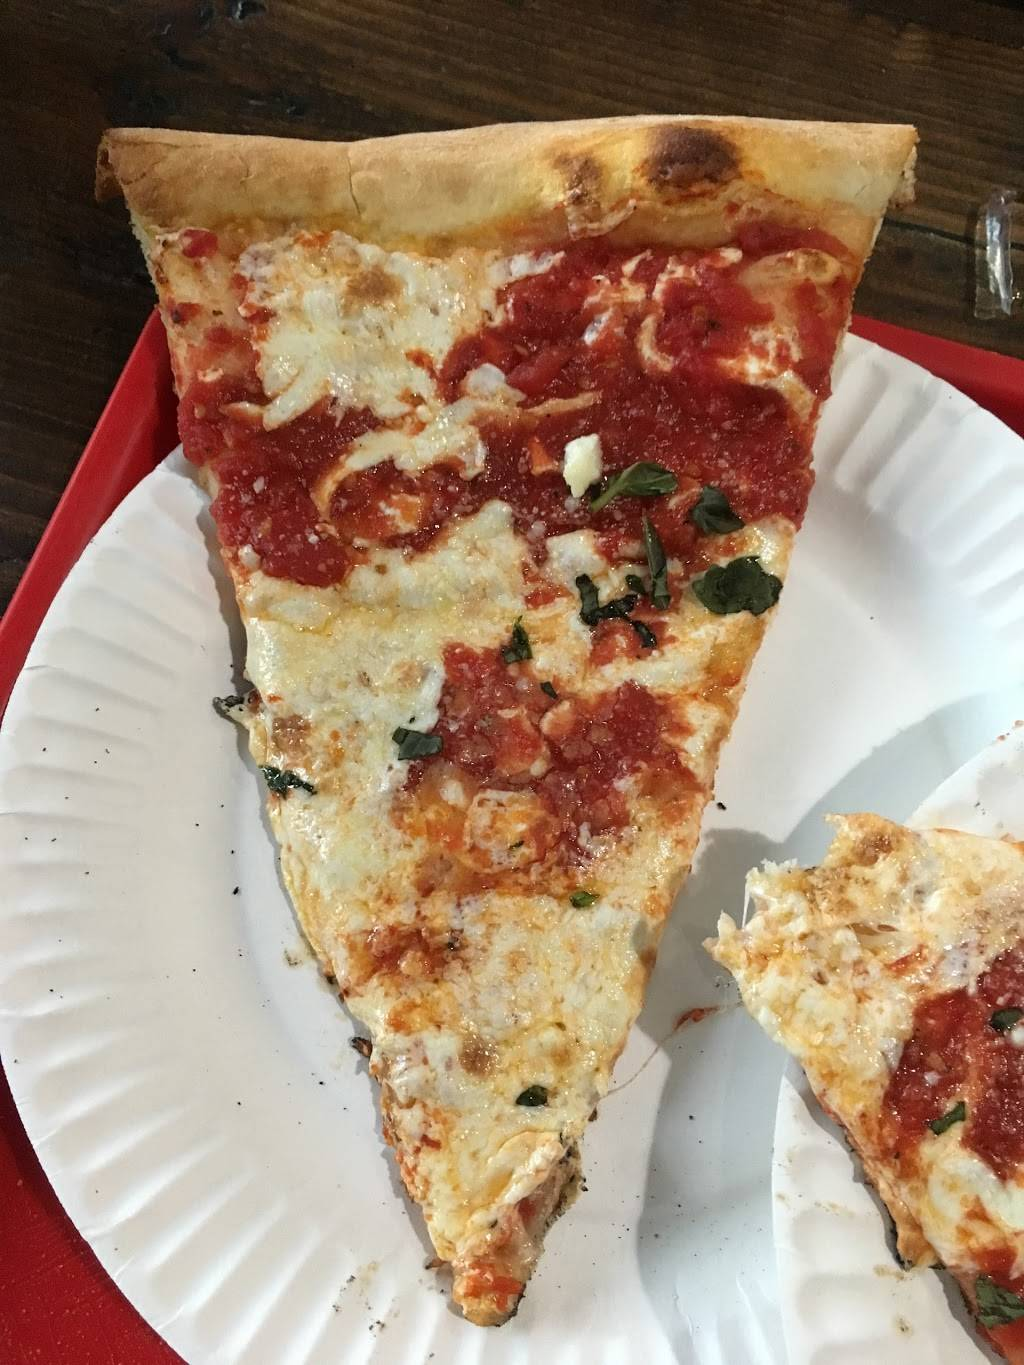 Pizza Cotta Bene   meal delivery   1814, 291 3rd Ave, Brooklyn, NY 11215, USA   7187227200 OR +1 718-722-7200